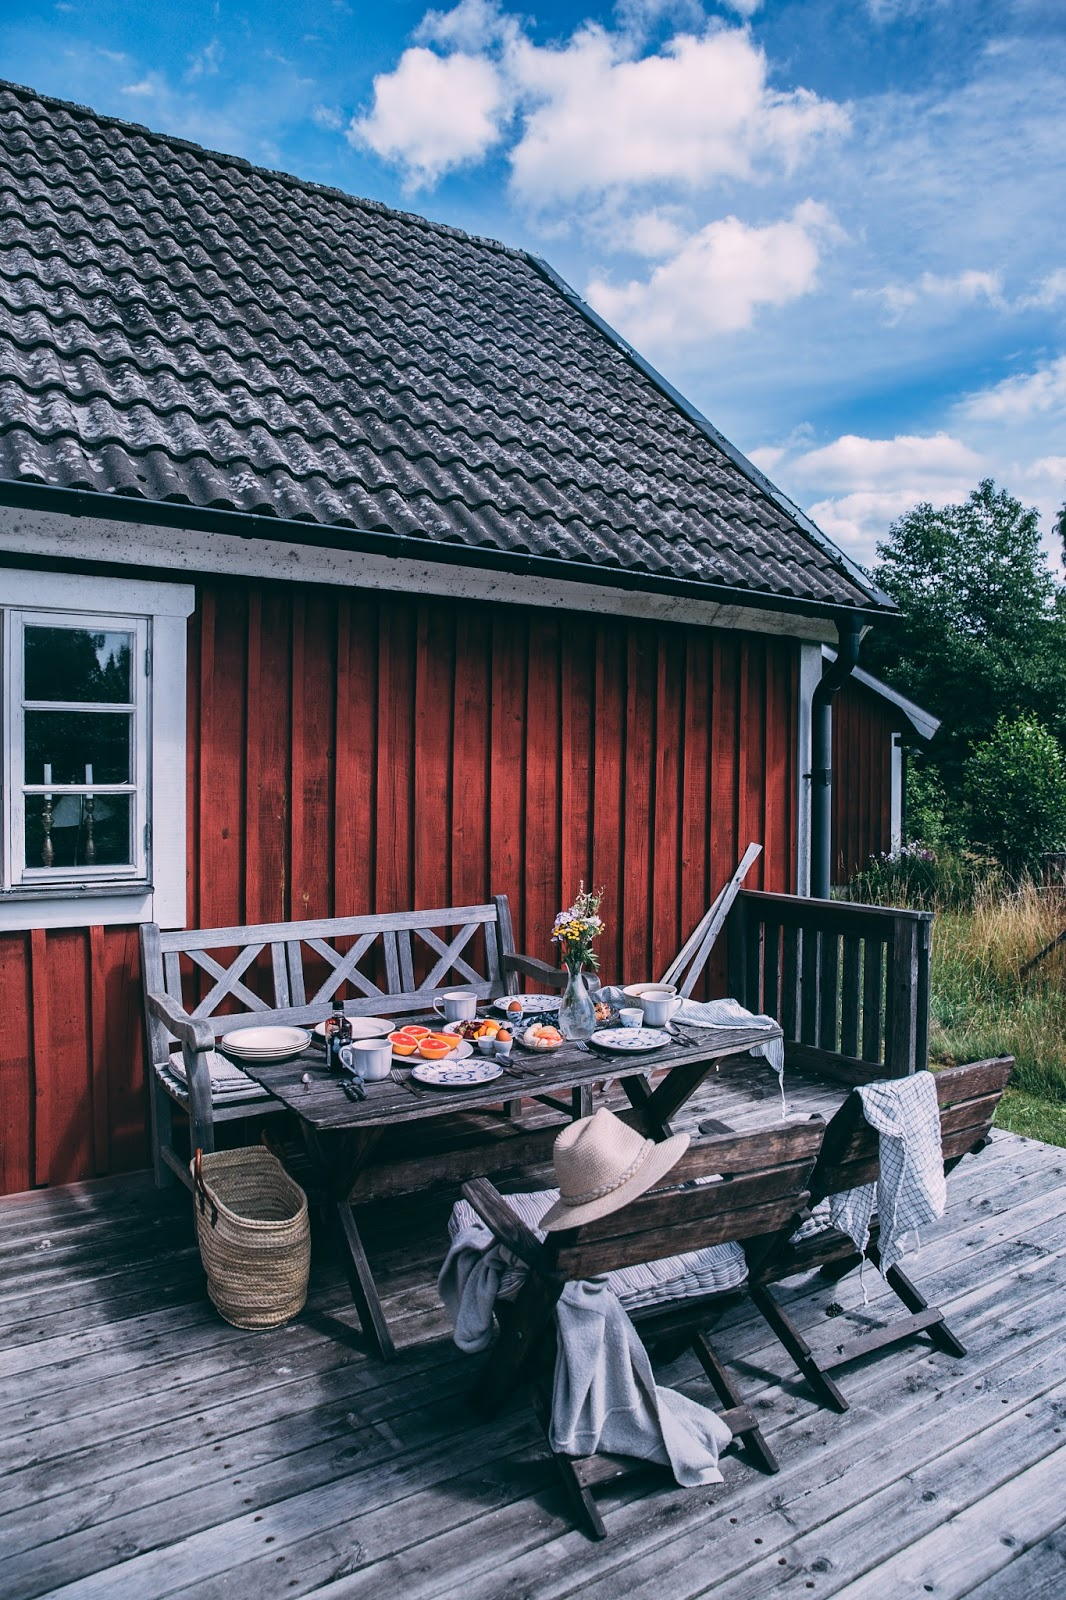 a wonderful weekend in sweden with friends | Our Food Stories ...